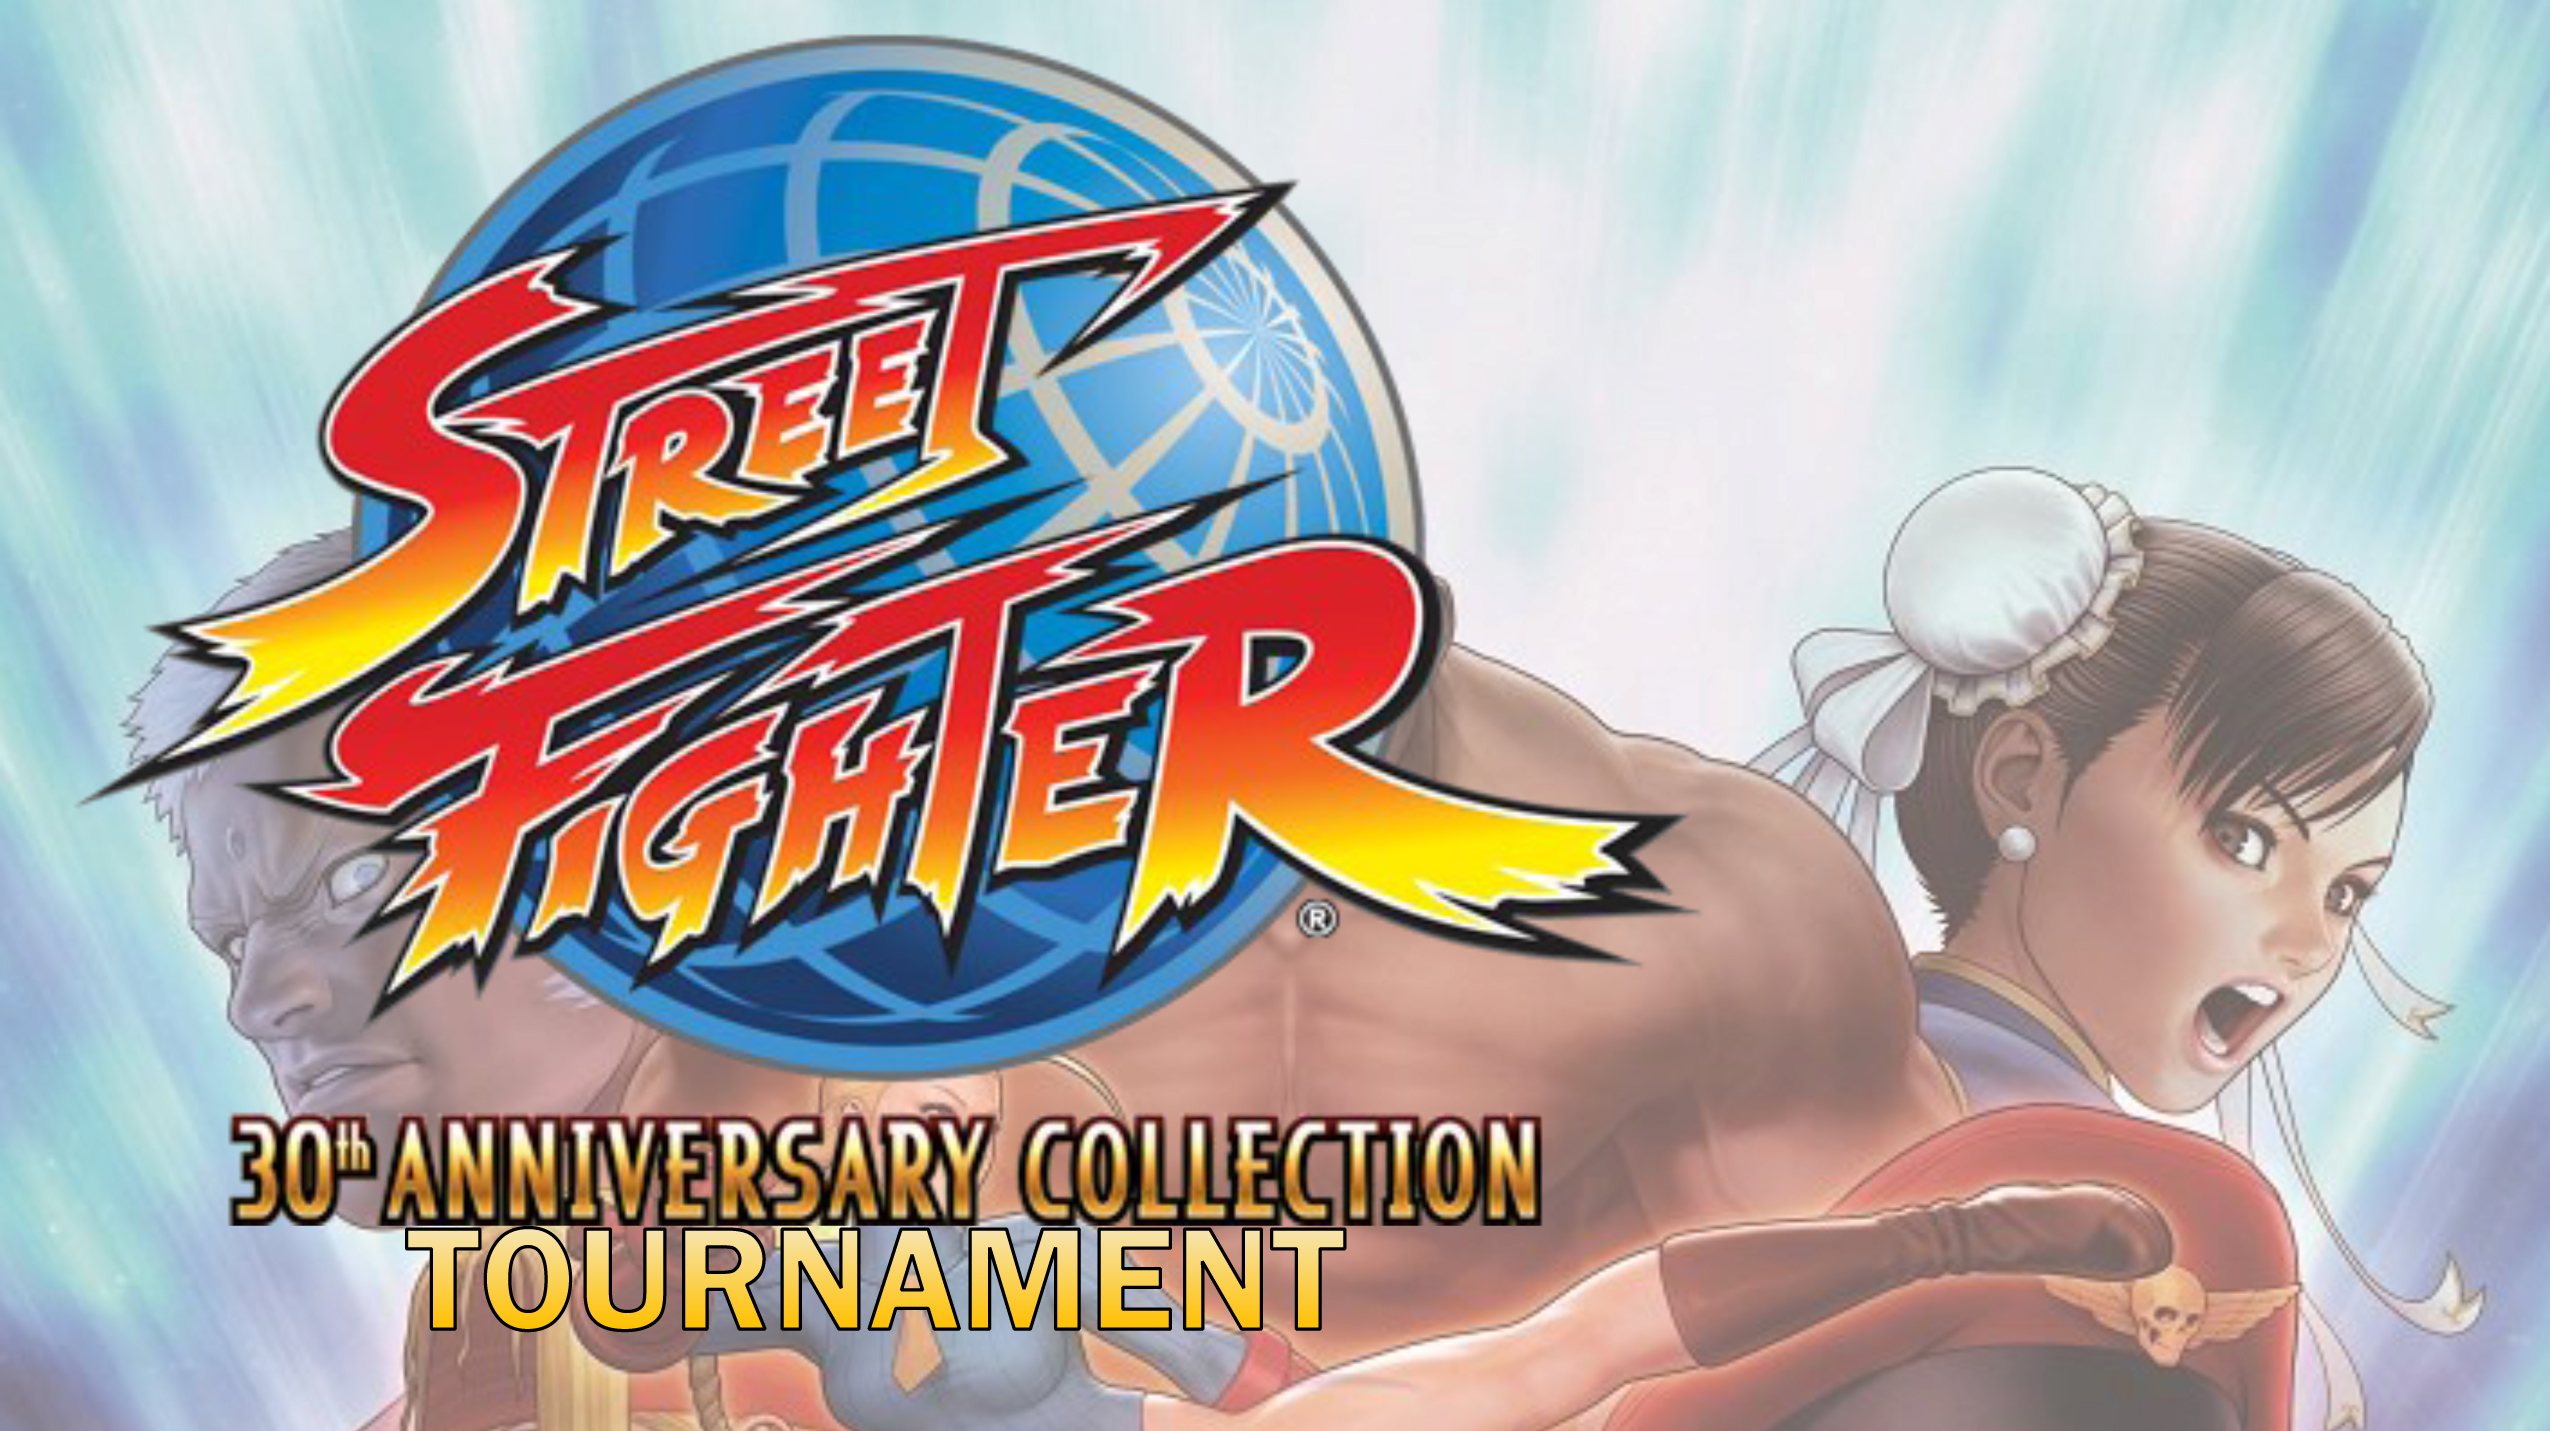 Street Fighter Tournament